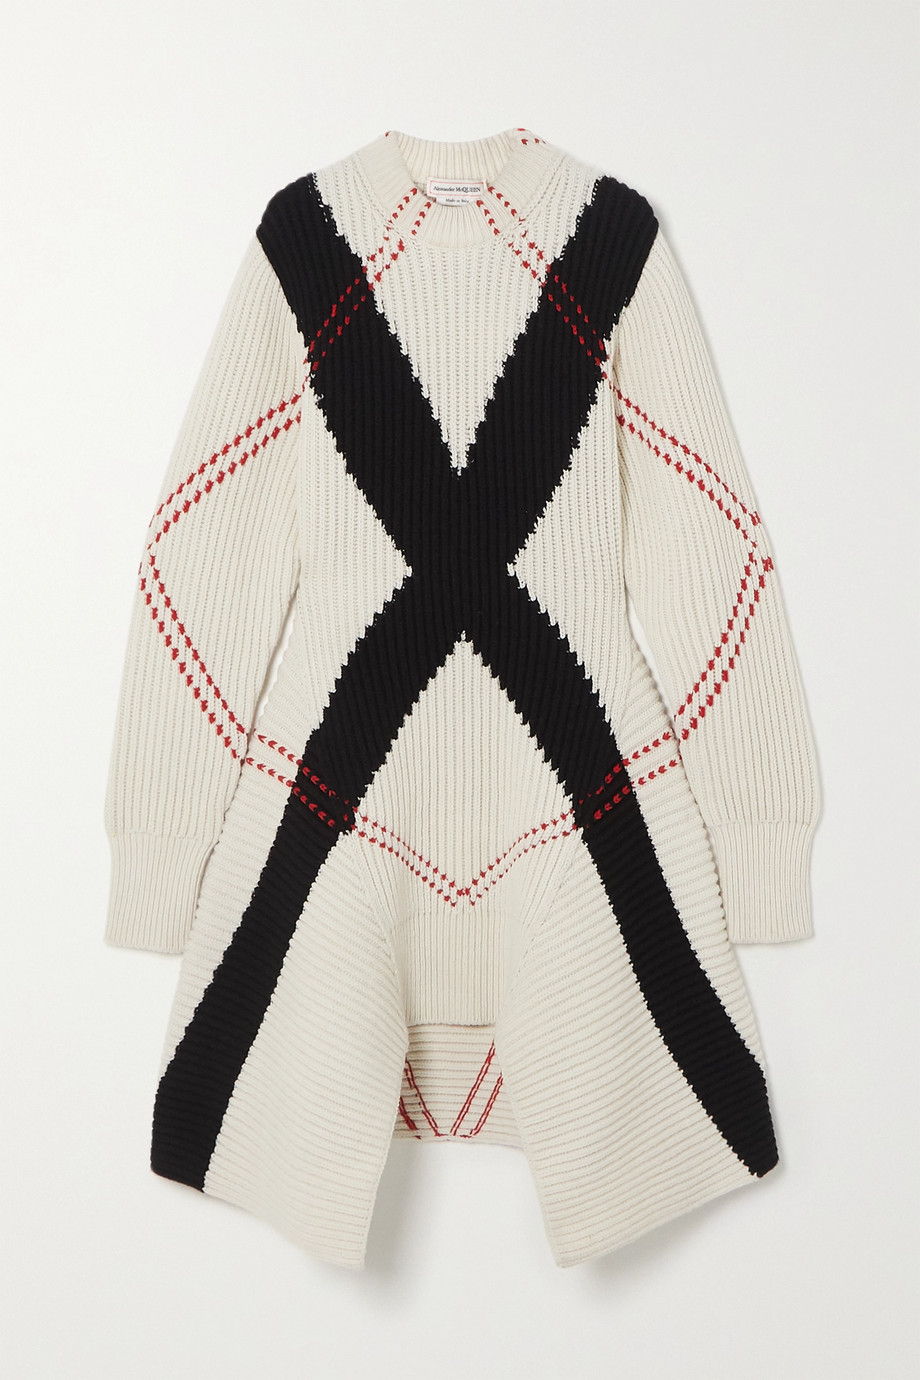 Alexander McQueen Asymmetric argyle ribbed wool and cashmere-blend dress